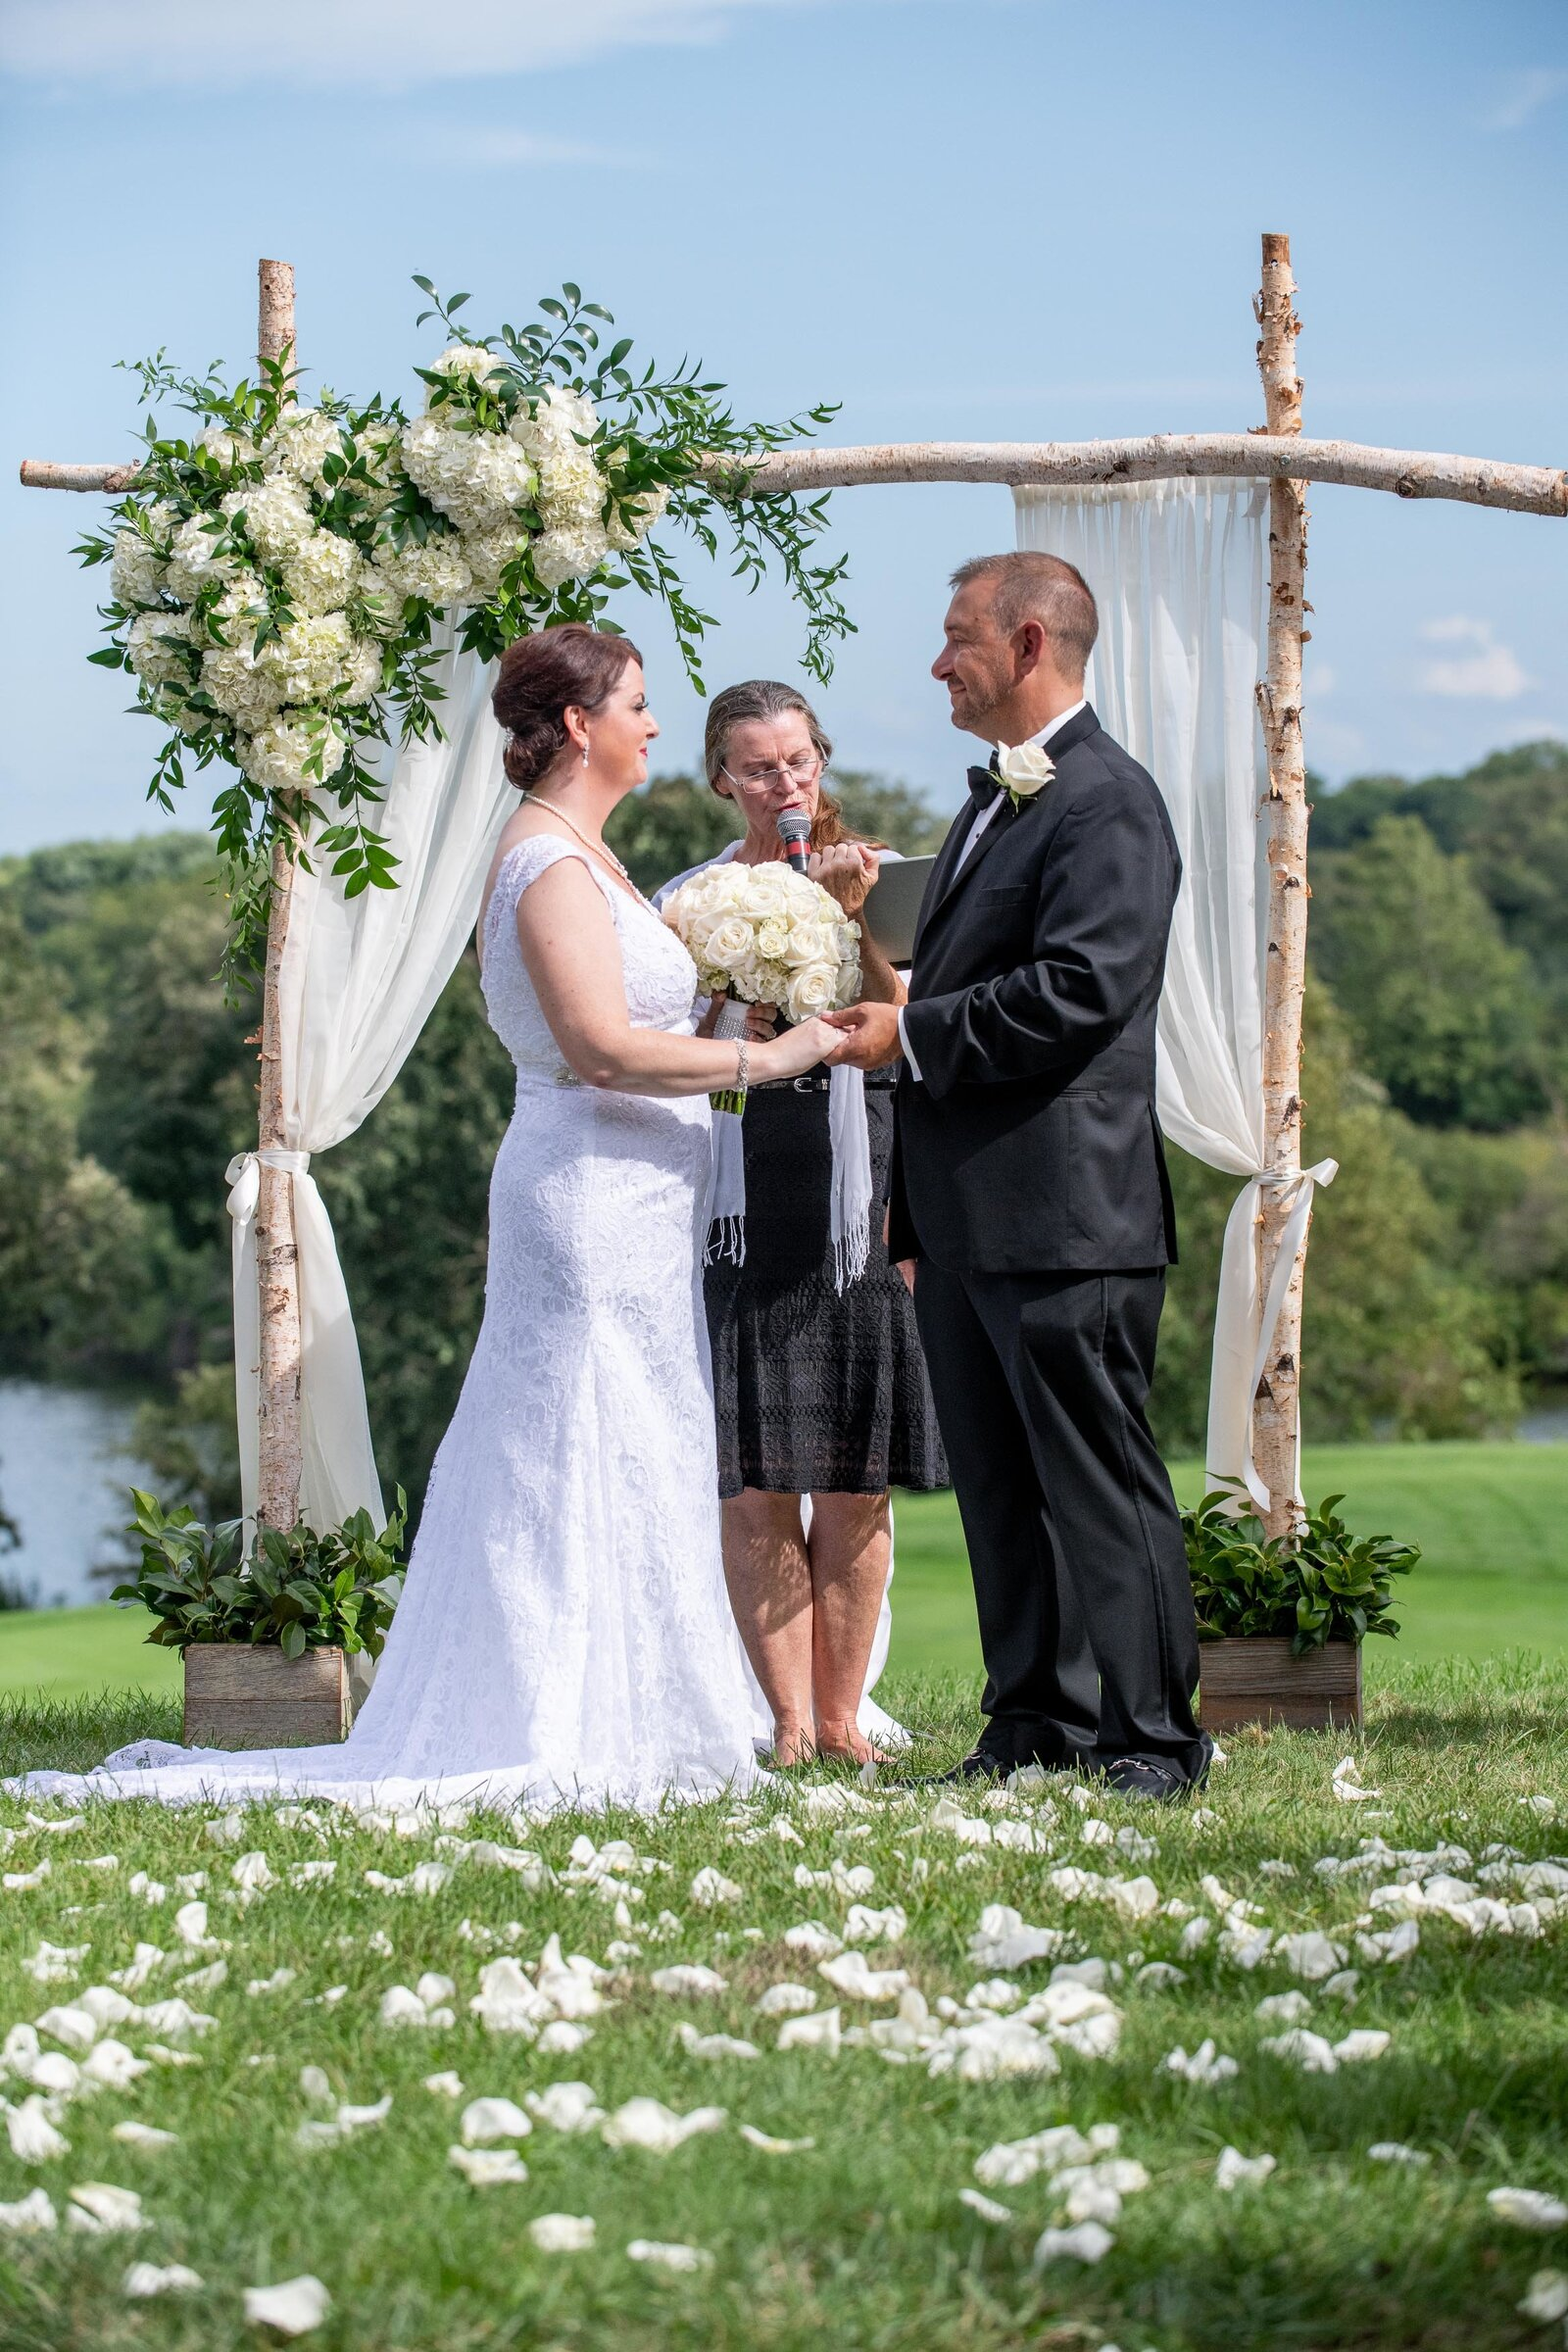 wedding-reception-lake-geneva-ceremony-bride-groom